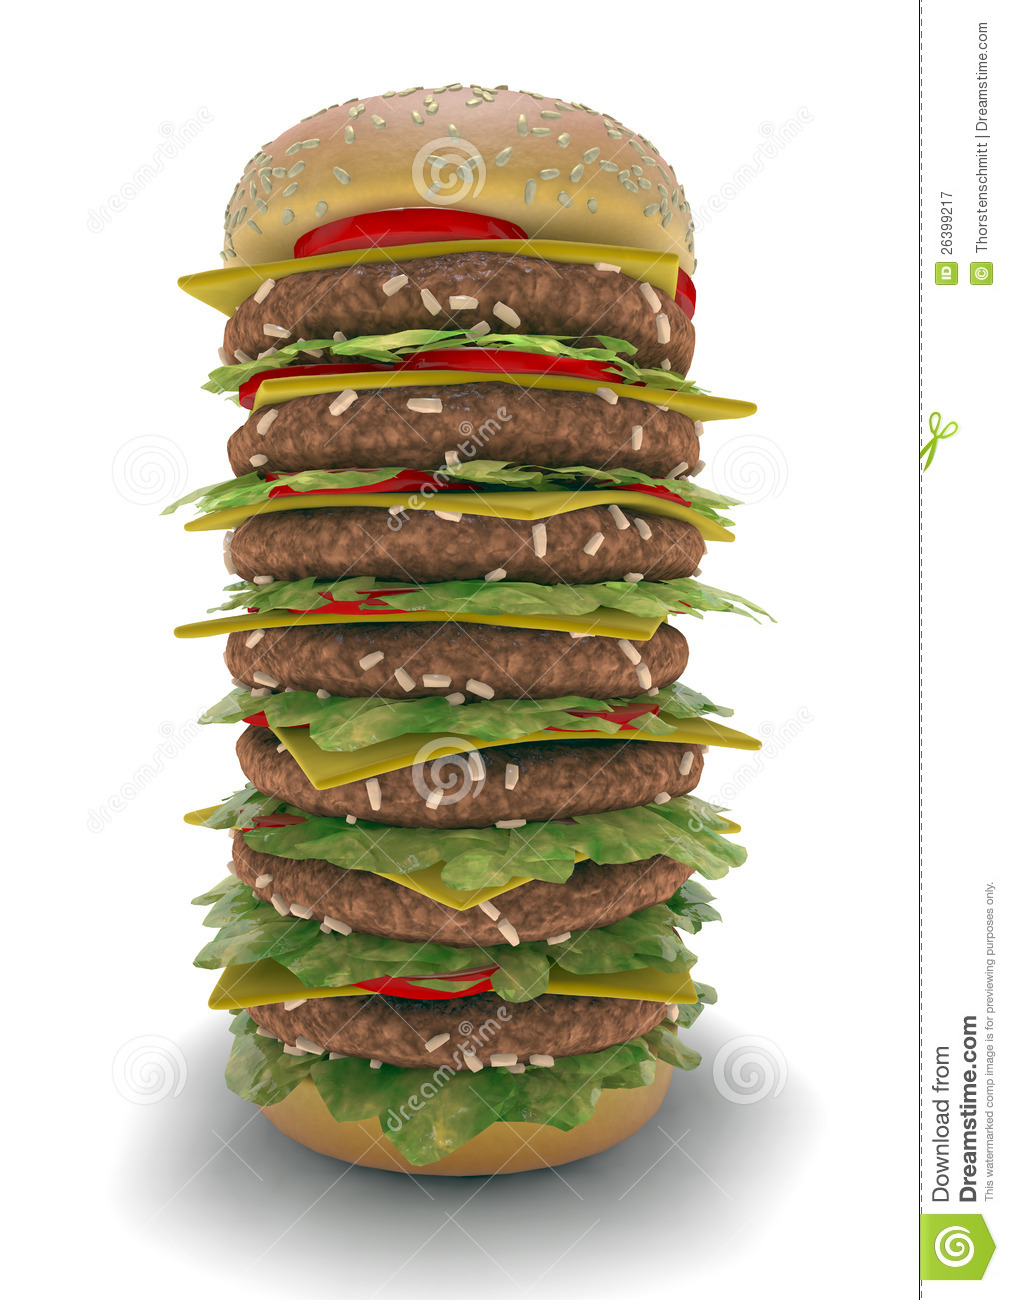 Hamburger Meal XXL Royalty Free Stock Photography  Image: 26399217